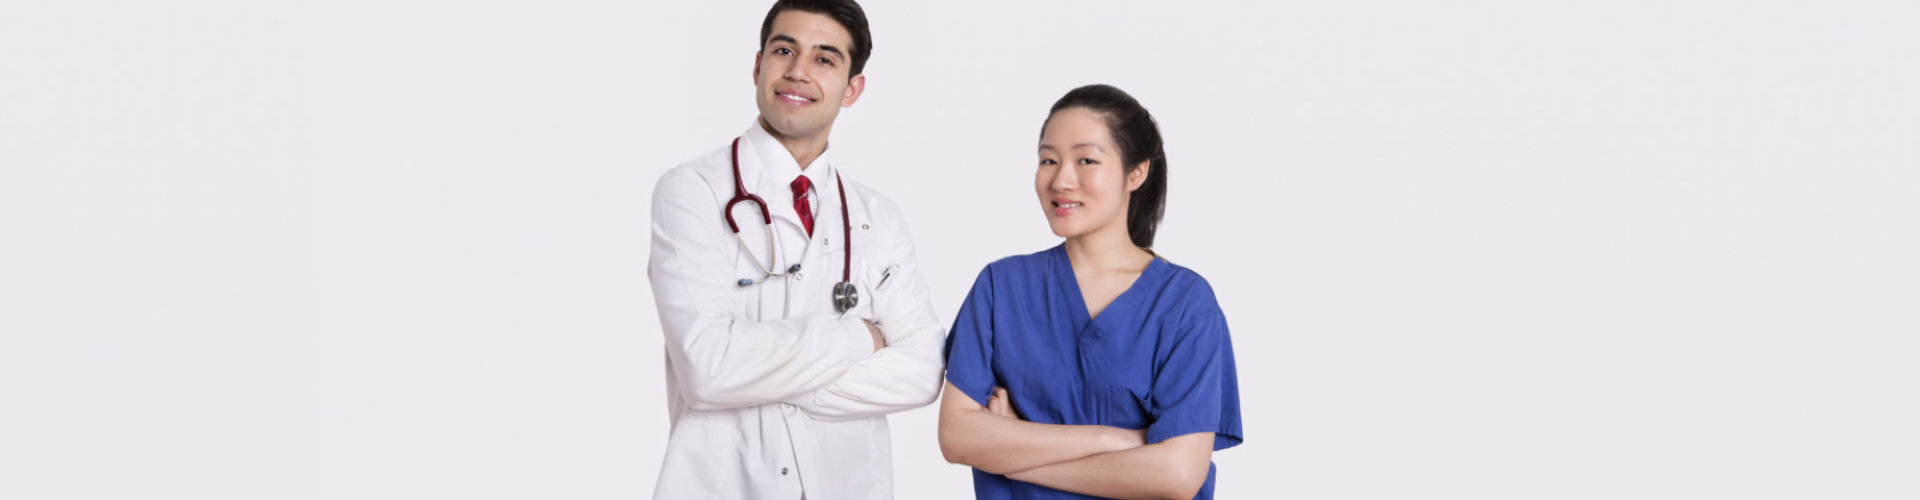 male doctor and female nurse smiling